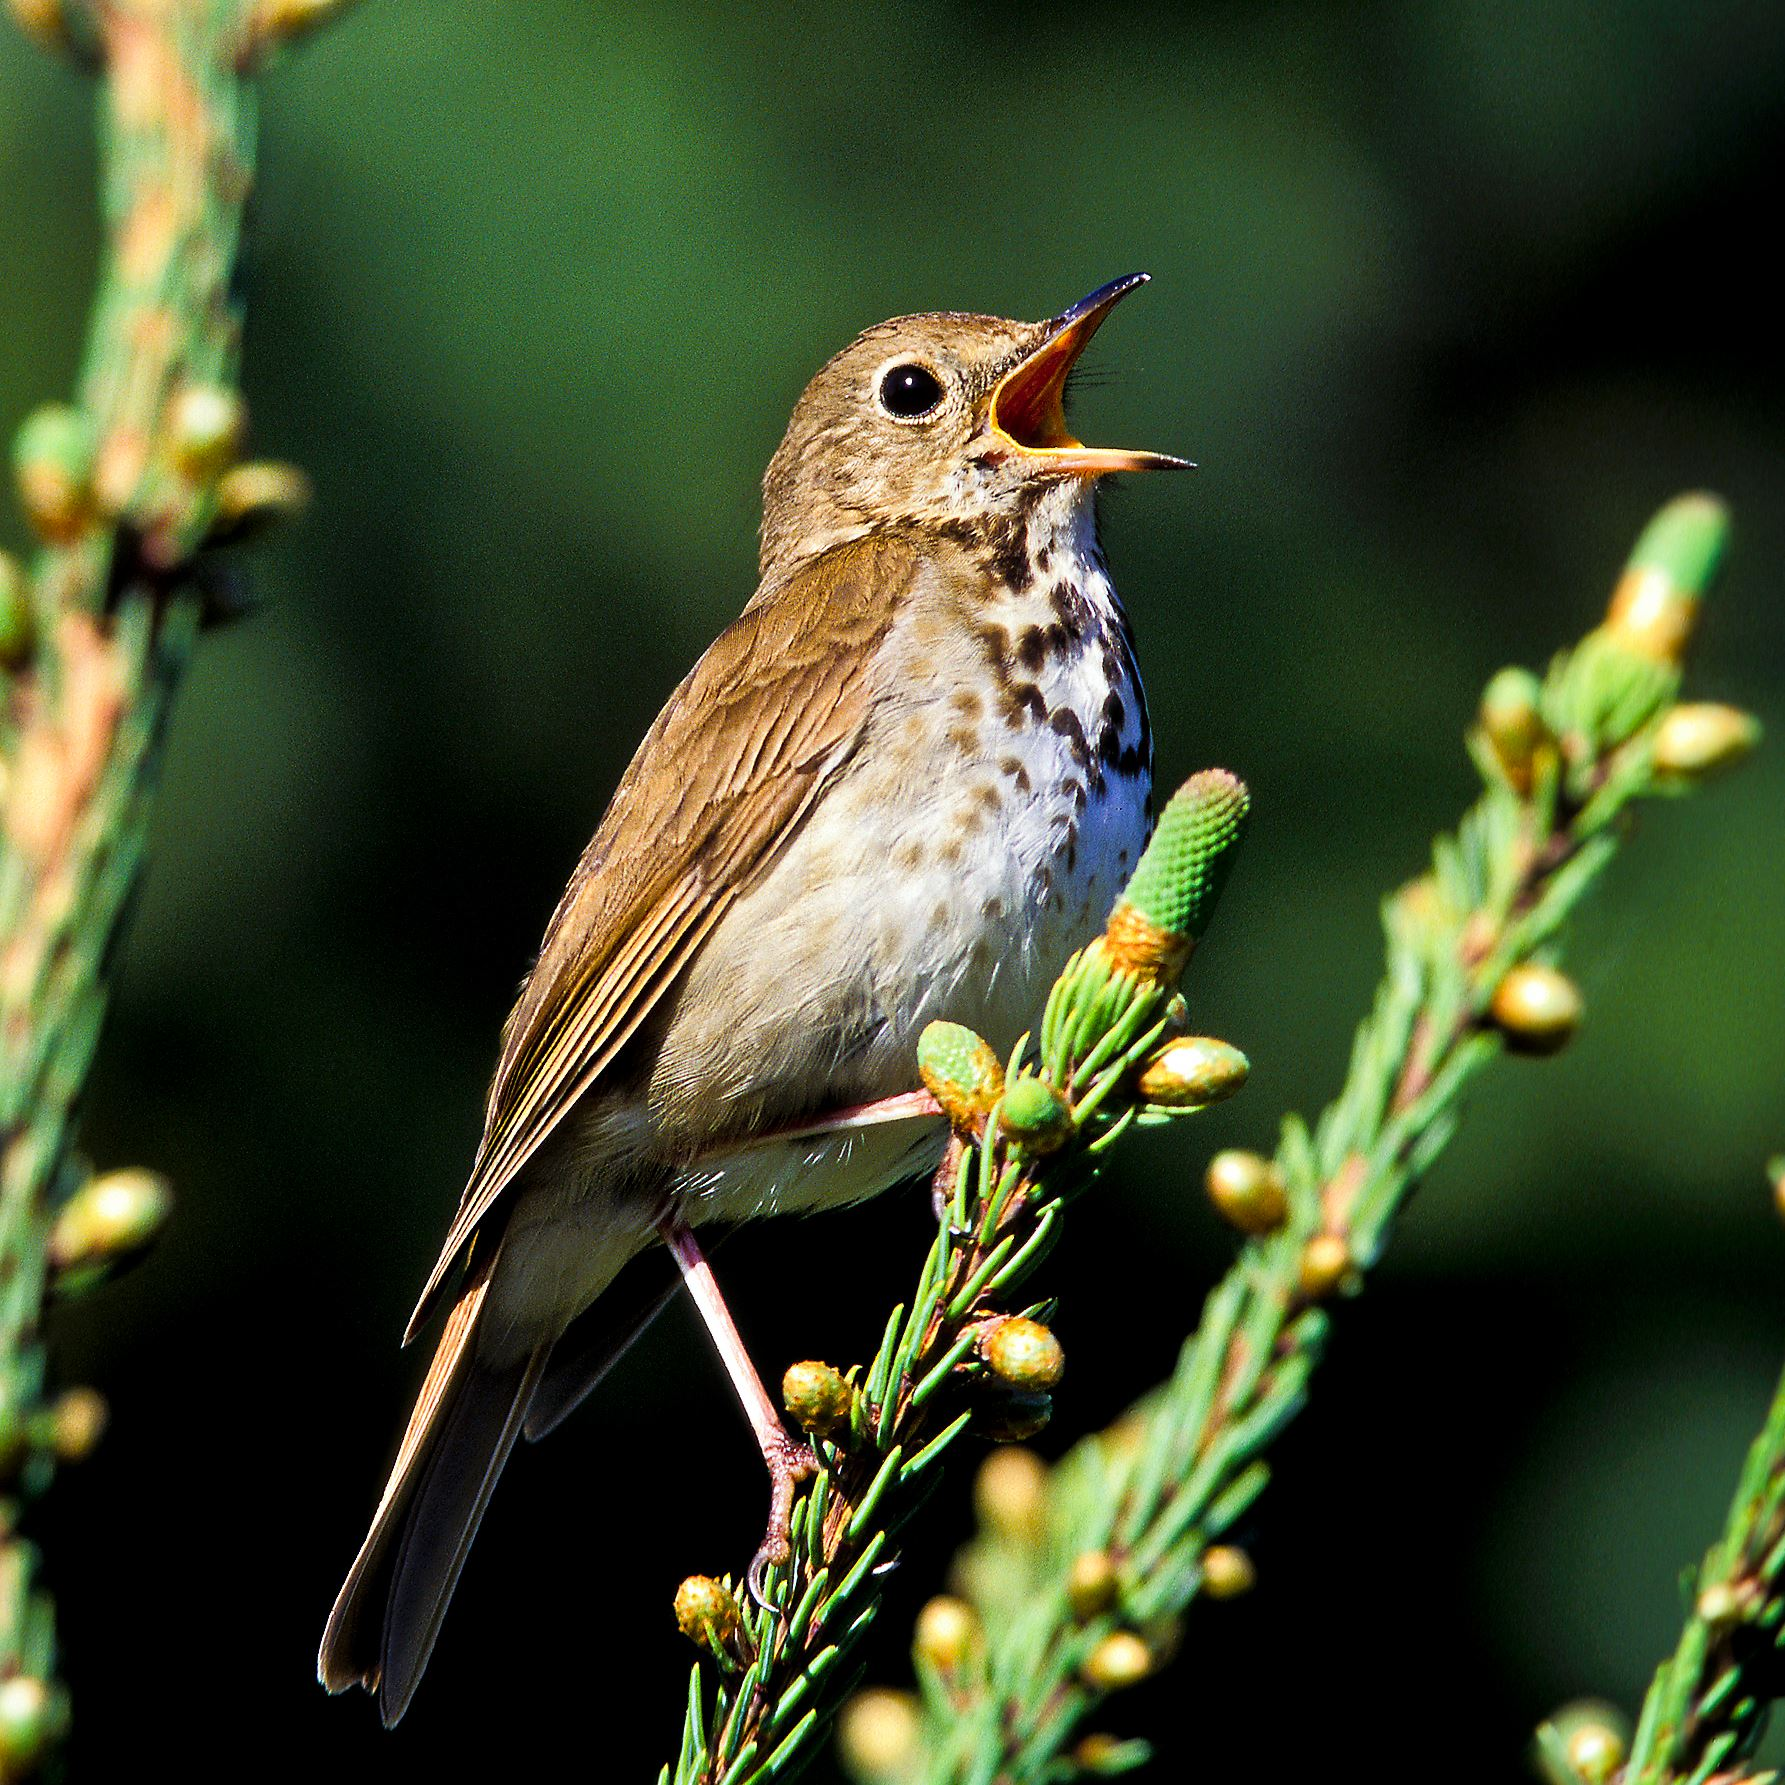 Hermit thrush image via https://www.post-gazette.com/life/my-generation/2015/05/27/Let-s-talk-about-birds-Hermit-thrush/stories/201505270028